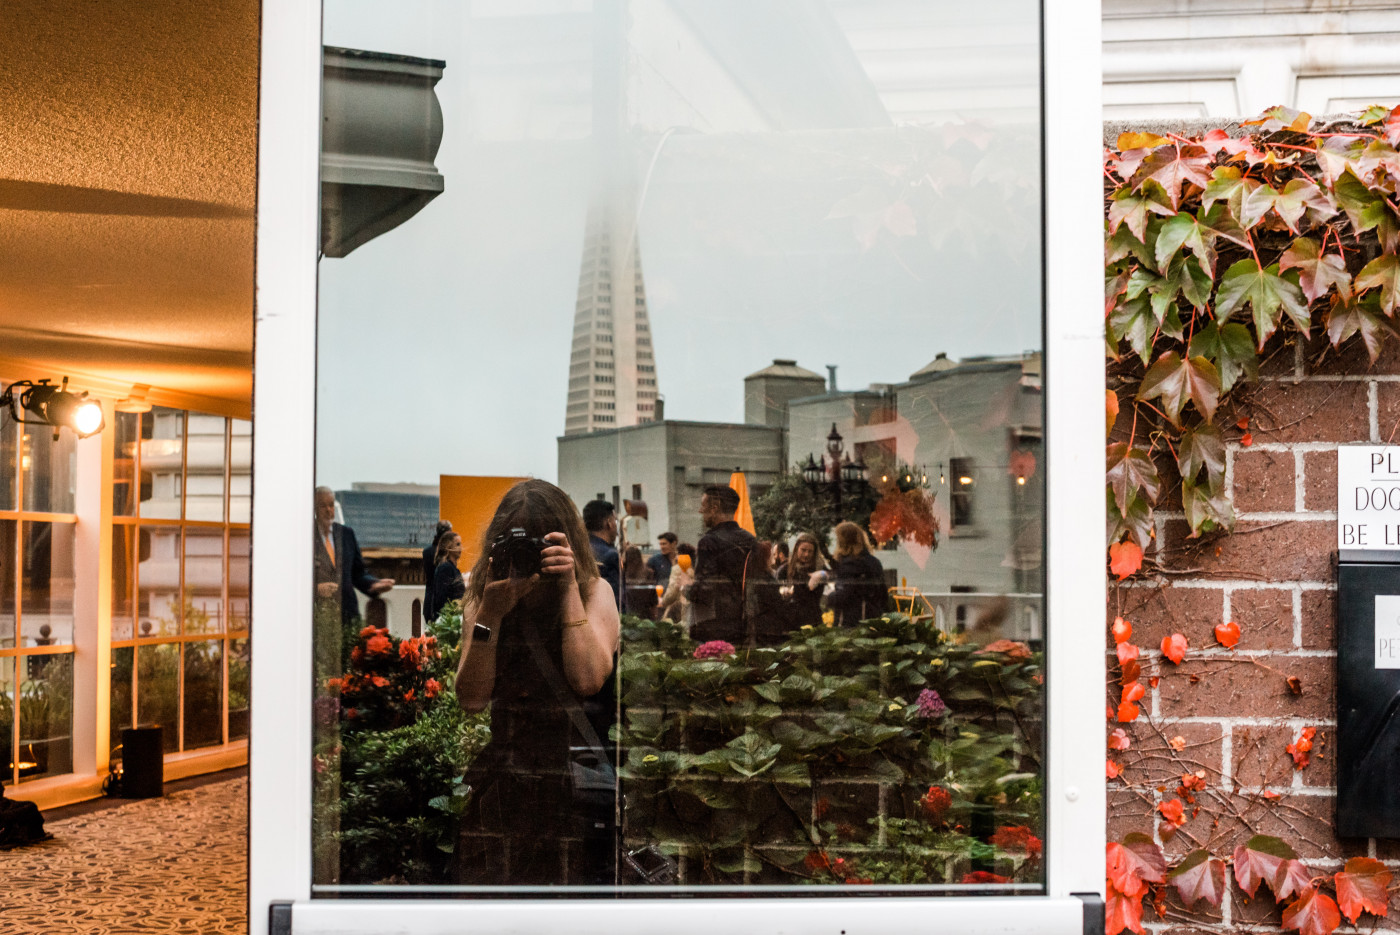 Kathleen photographing reflection in window at Fairmont hotel in San Francisco with Transamerica Pyramid behind her.